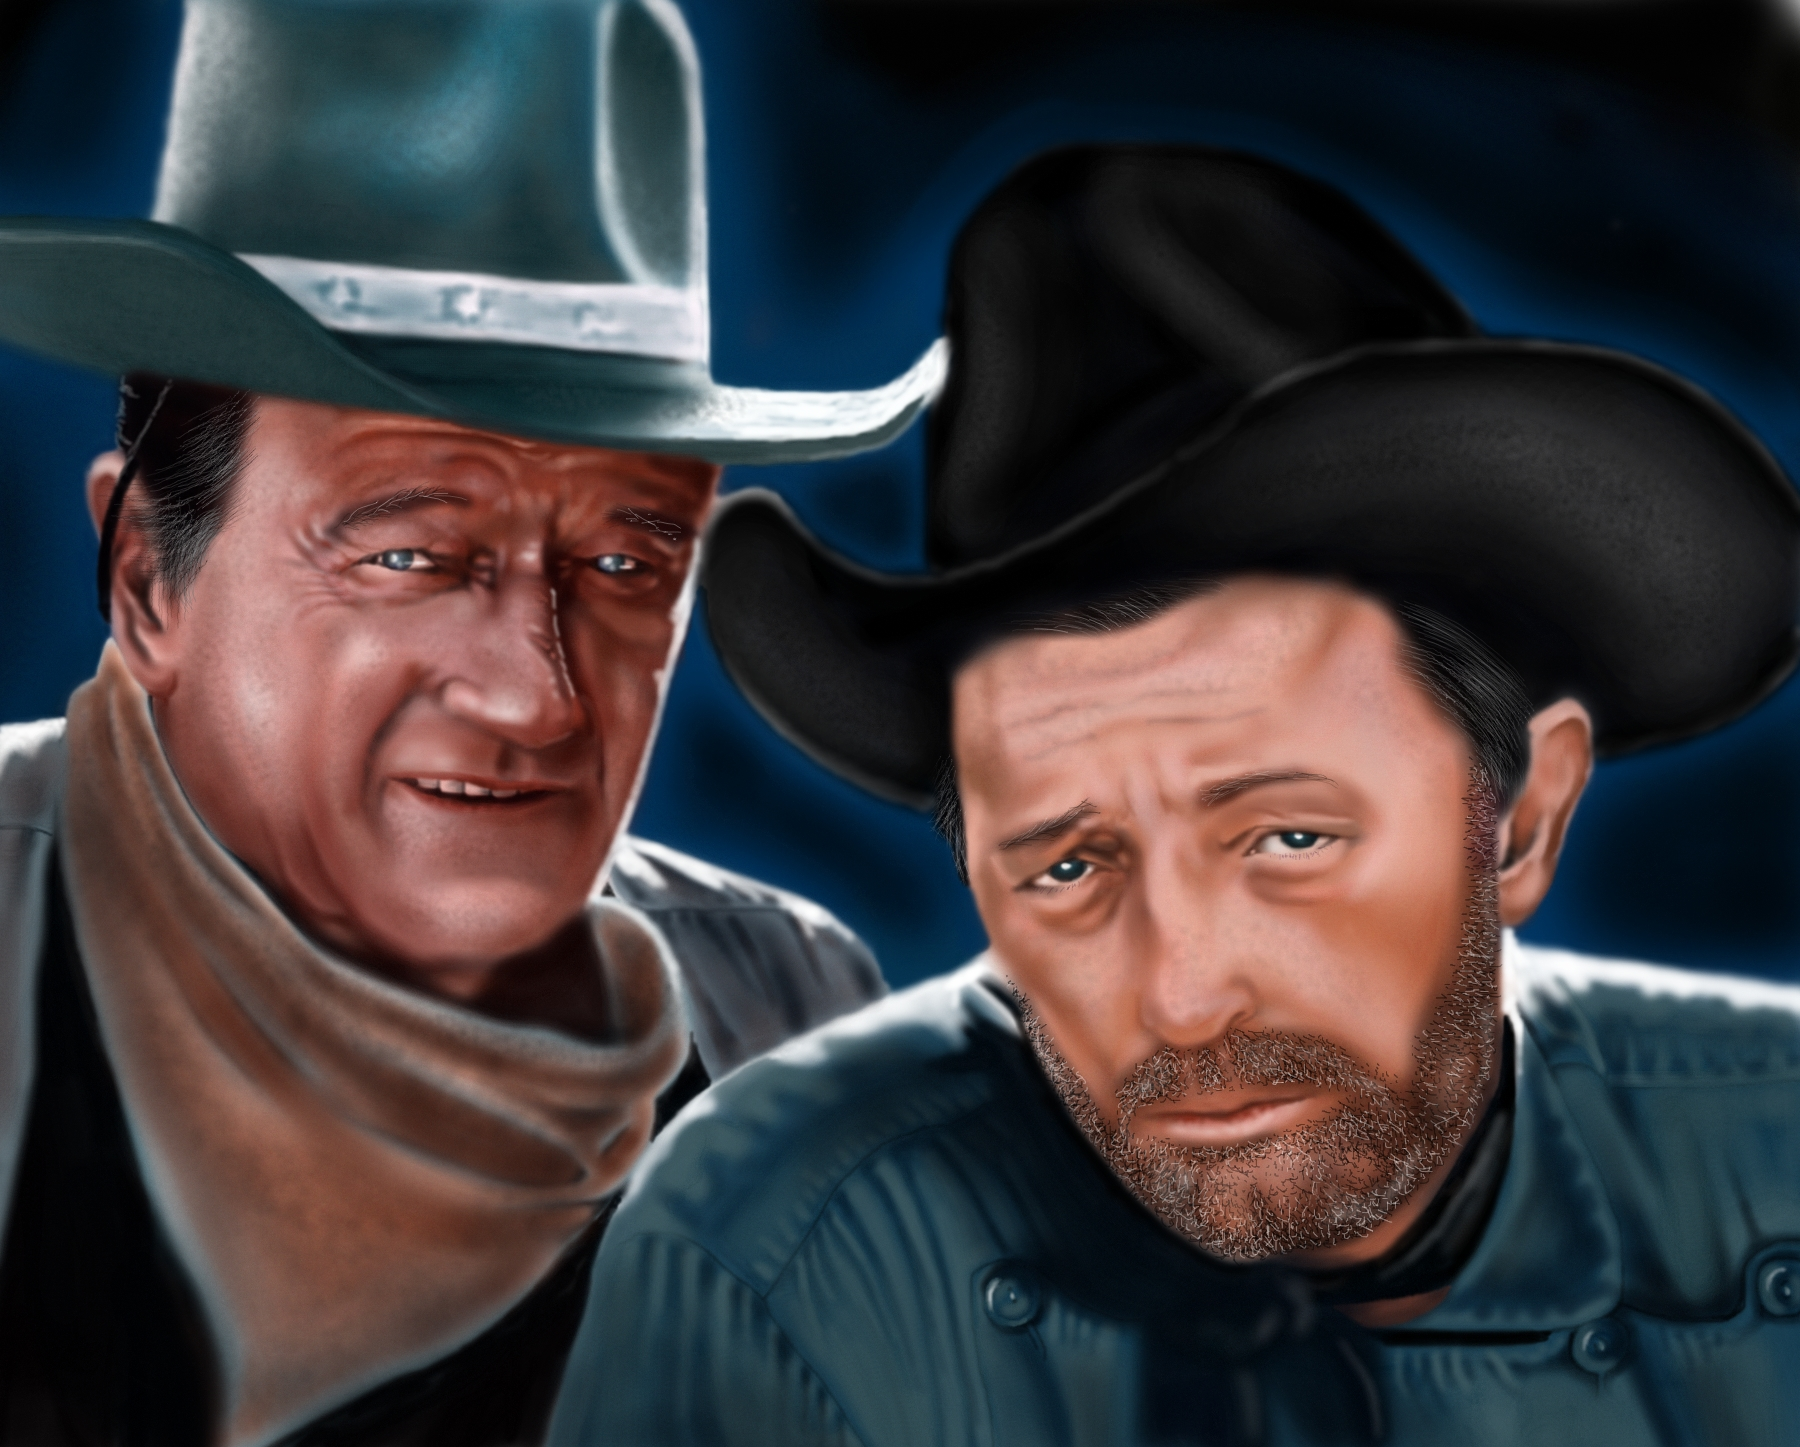 John Wayne and Robert Mitchum